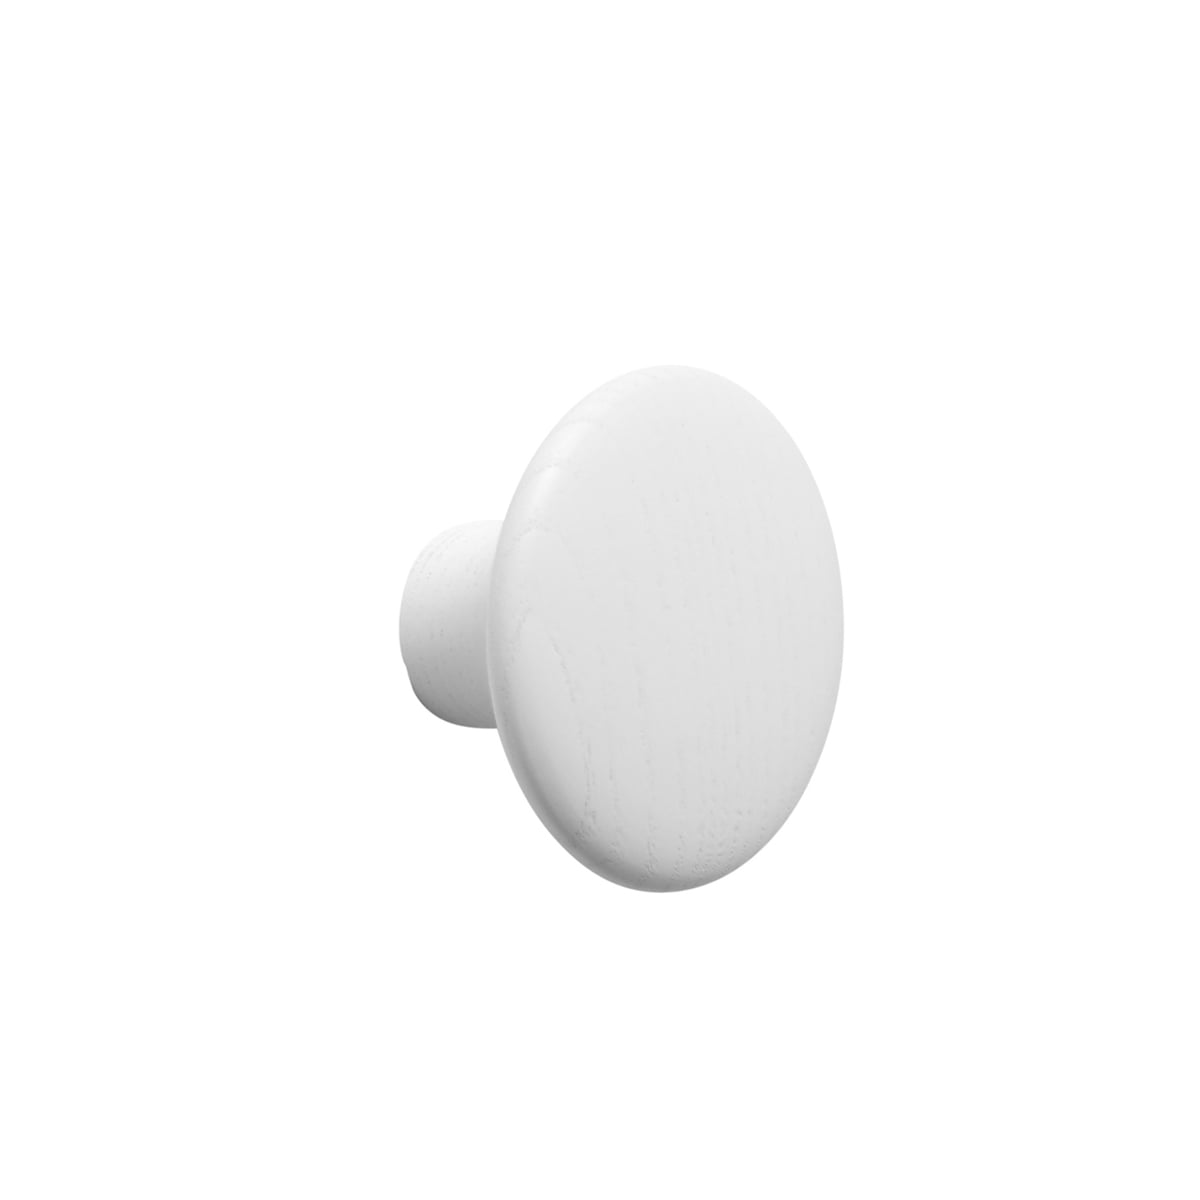 Wall Hooks S The Dots By Muuto In The Shop - Small wall hook